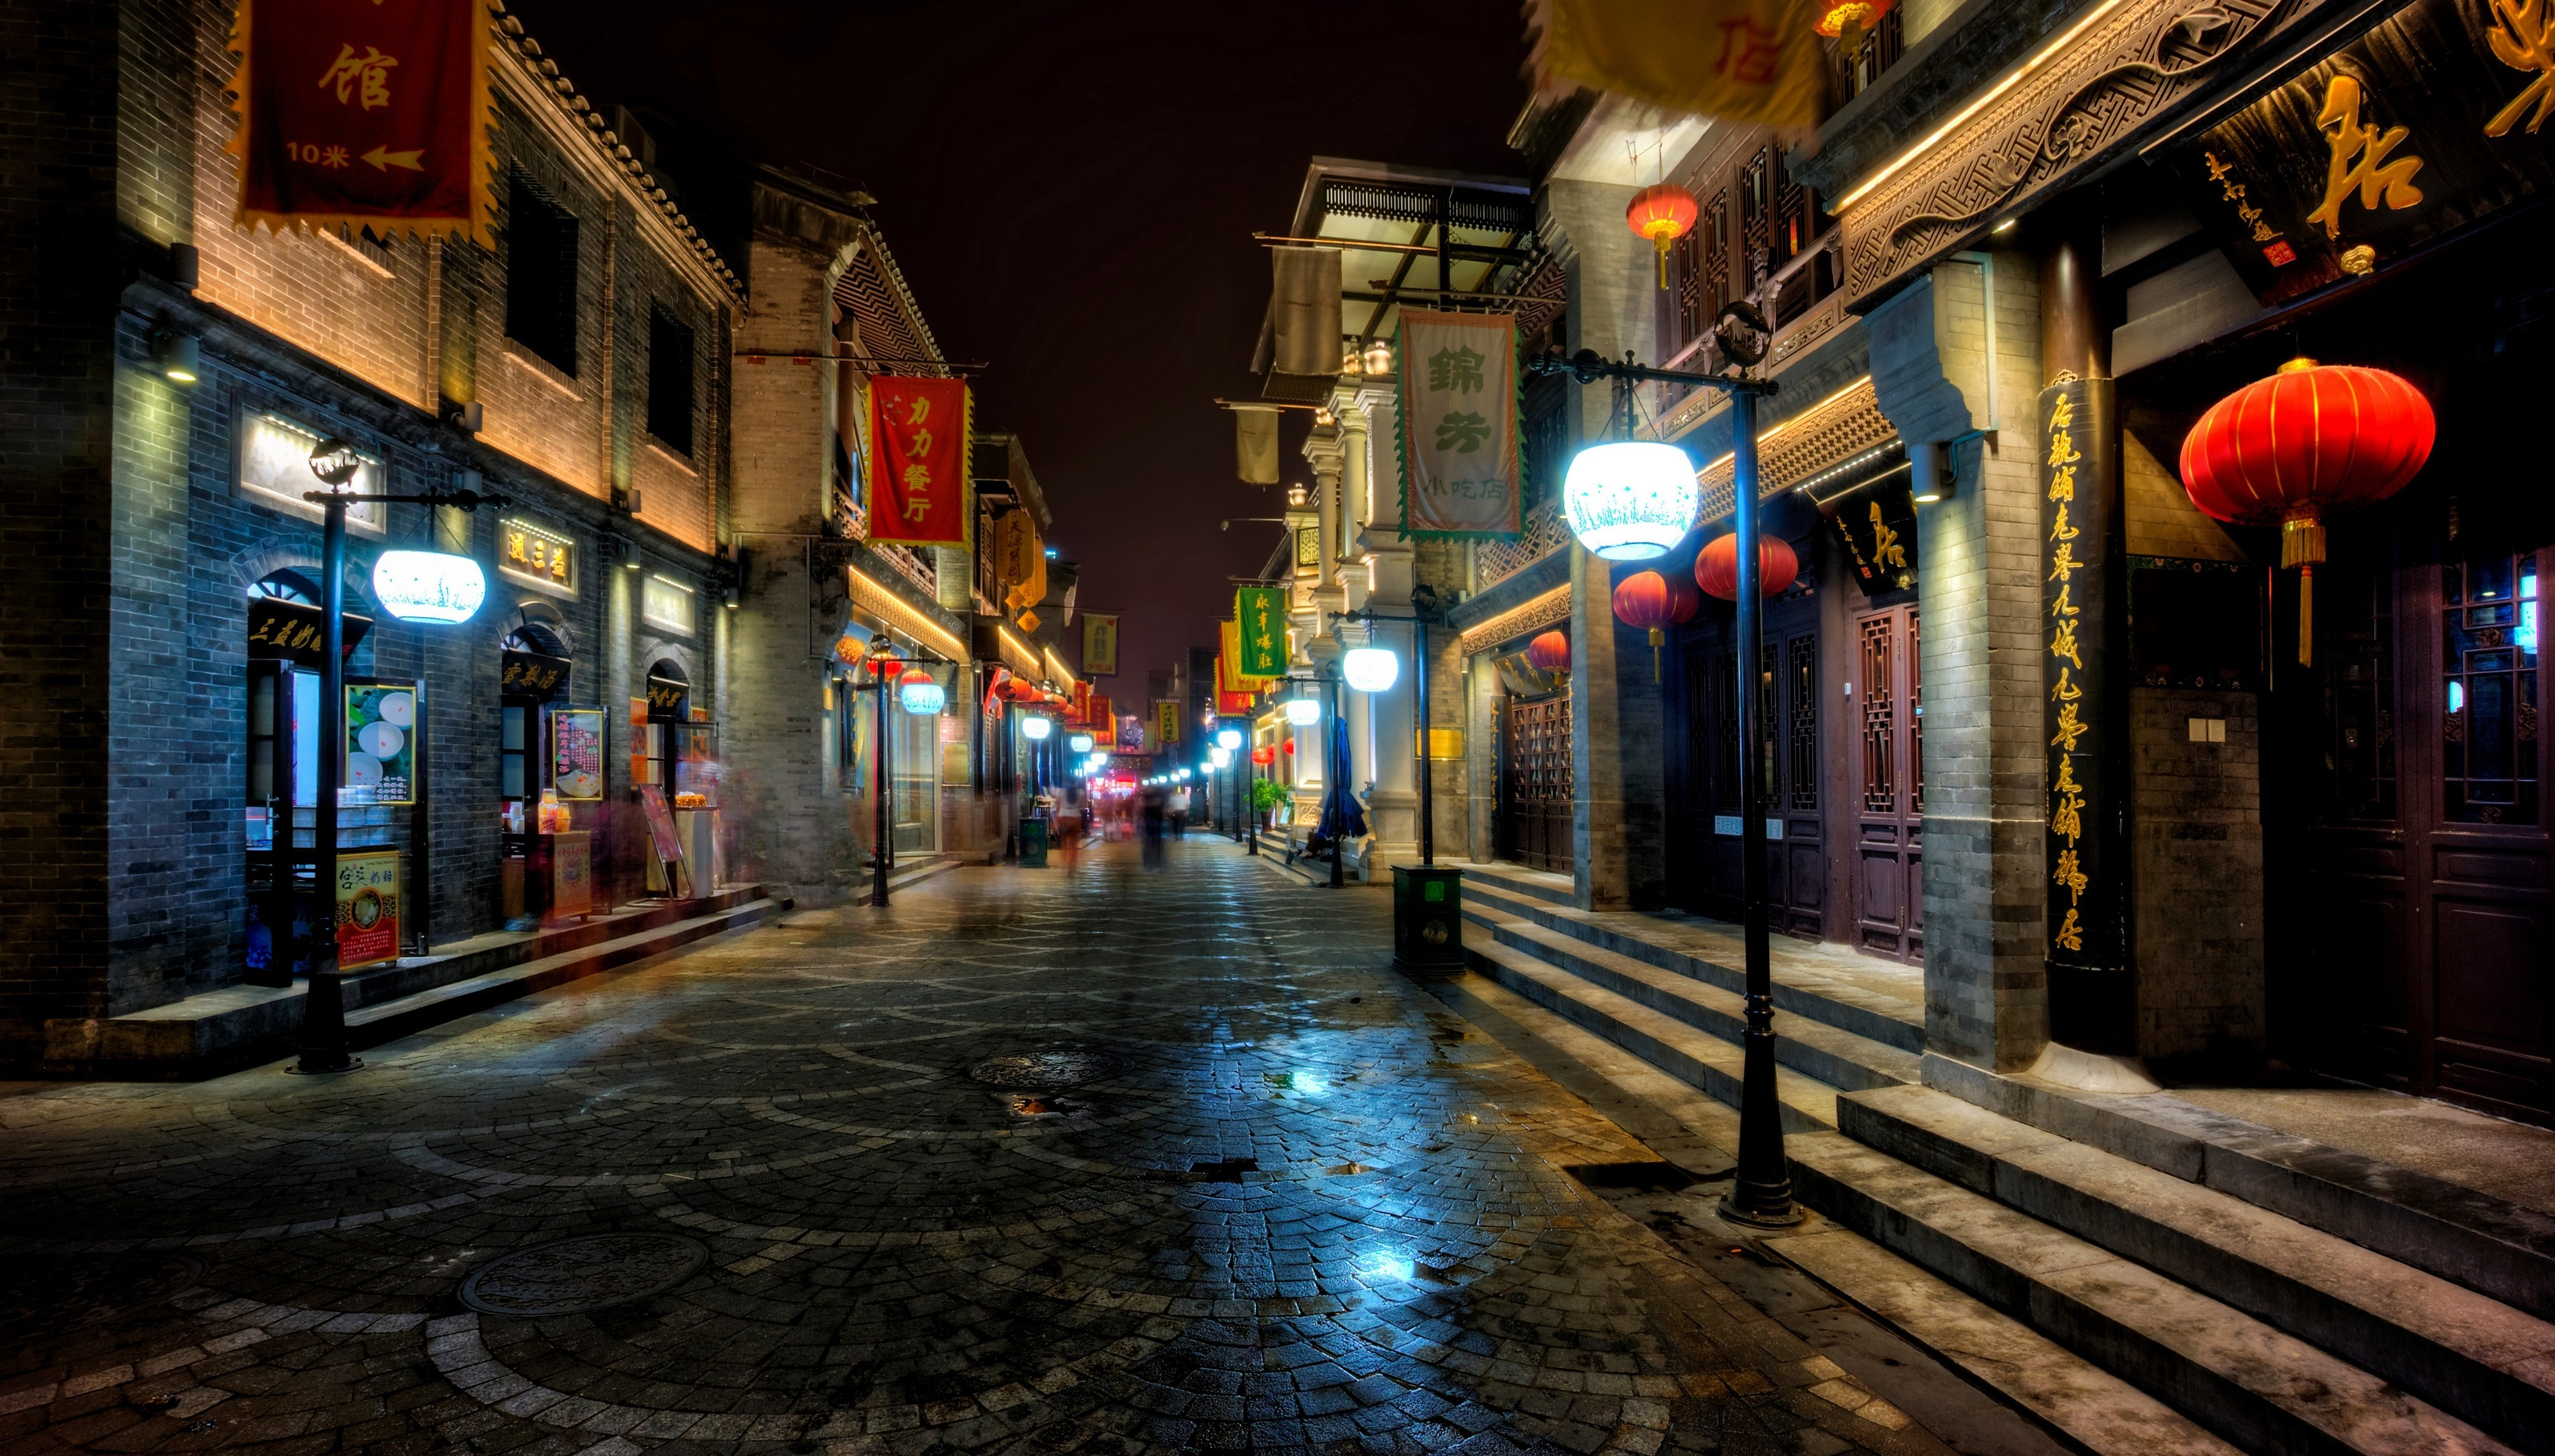 Hd 3d Wallpapers For Iphone 6 1080p Streets Of Beijing 4k Ultra Hd Wallpaper And Background